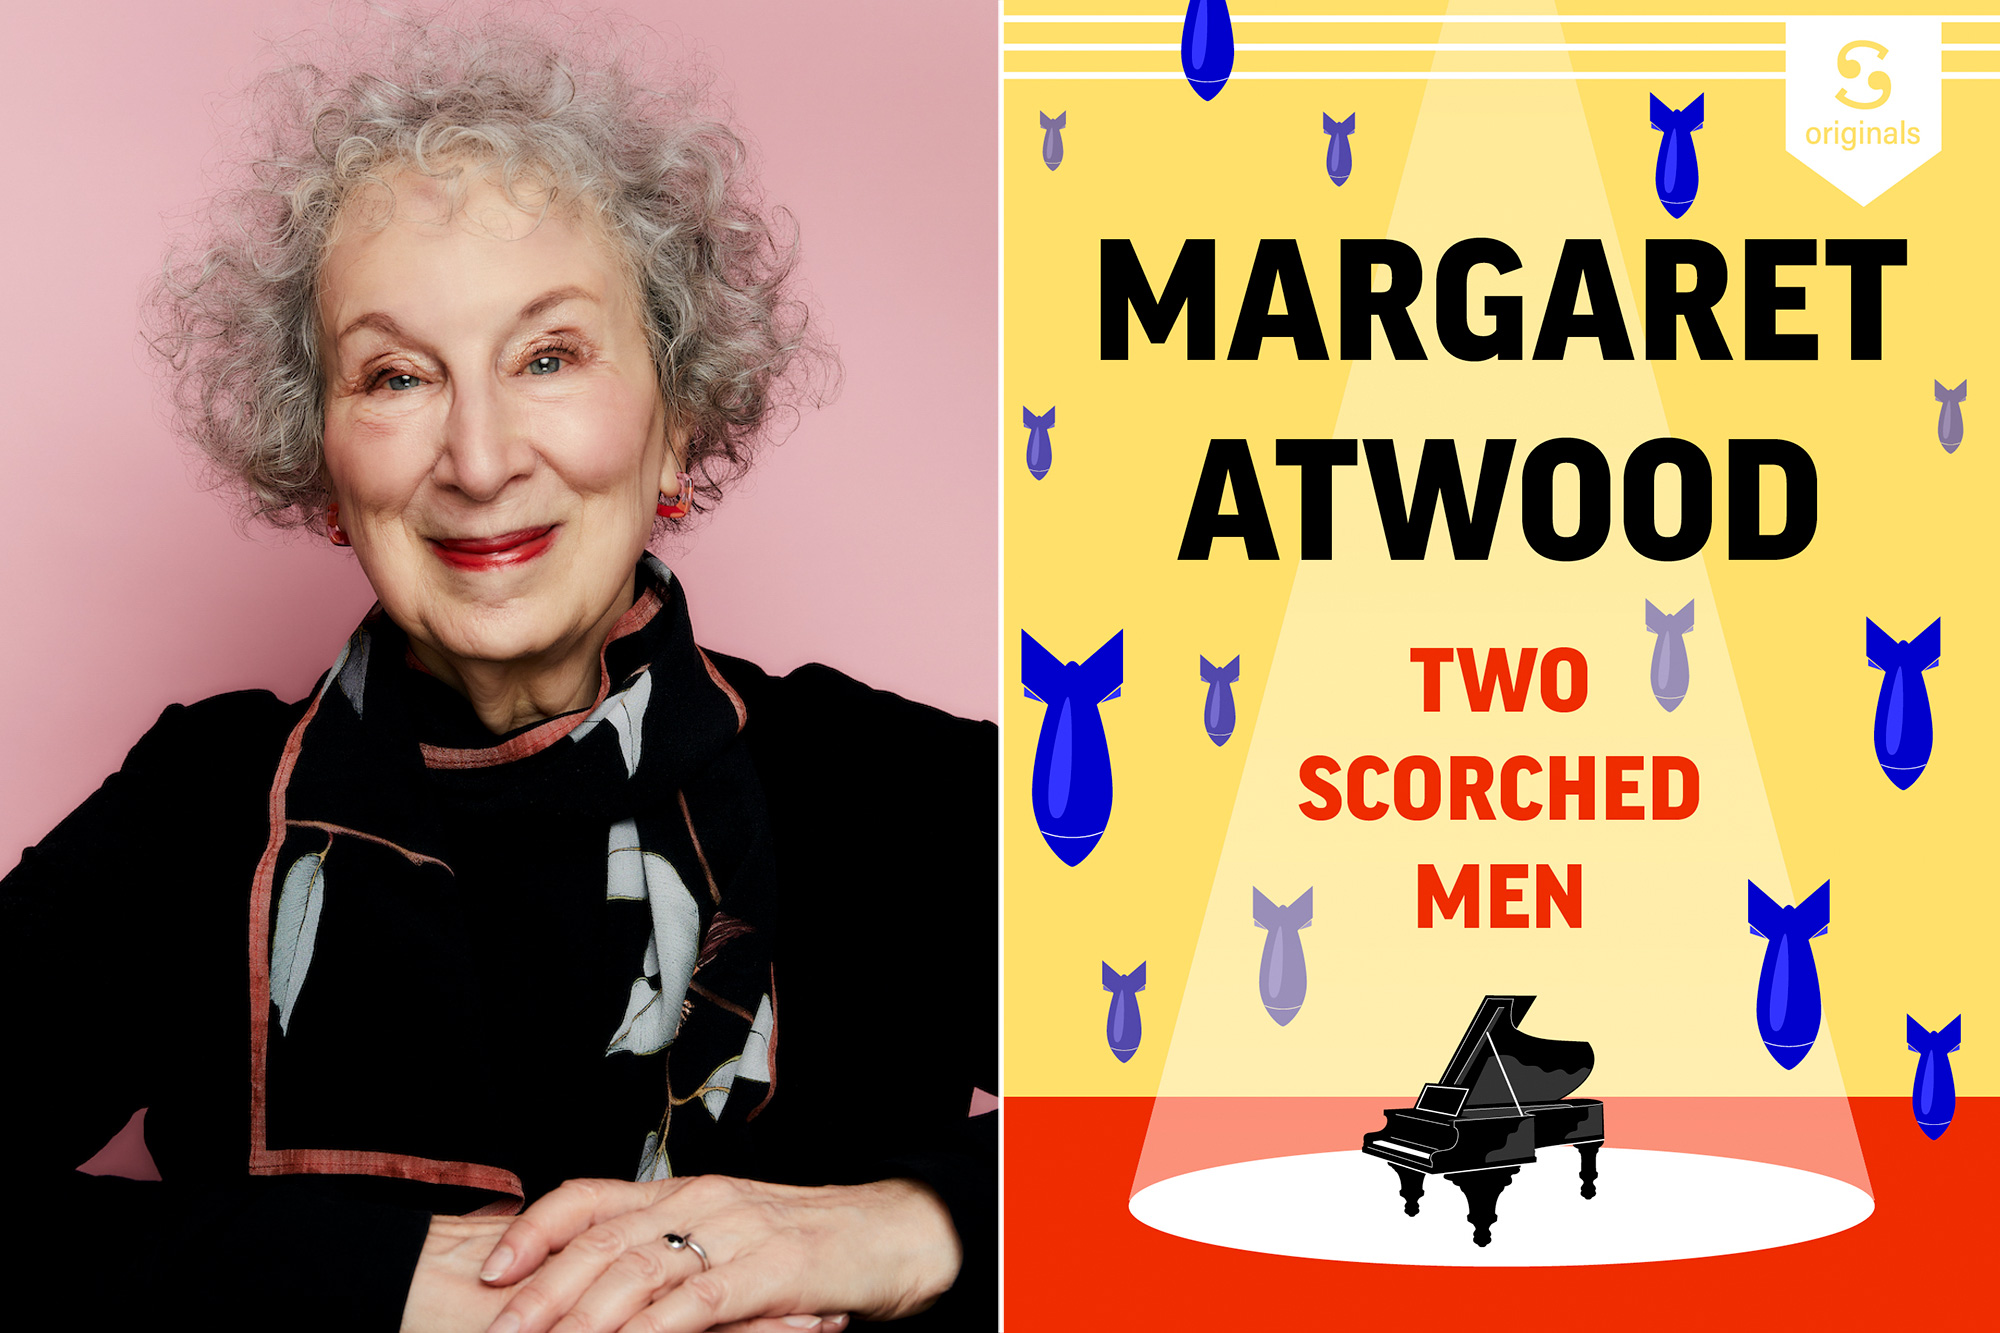 Margaret Atwood's latest piece of fiction is 'Two Scorched Men'